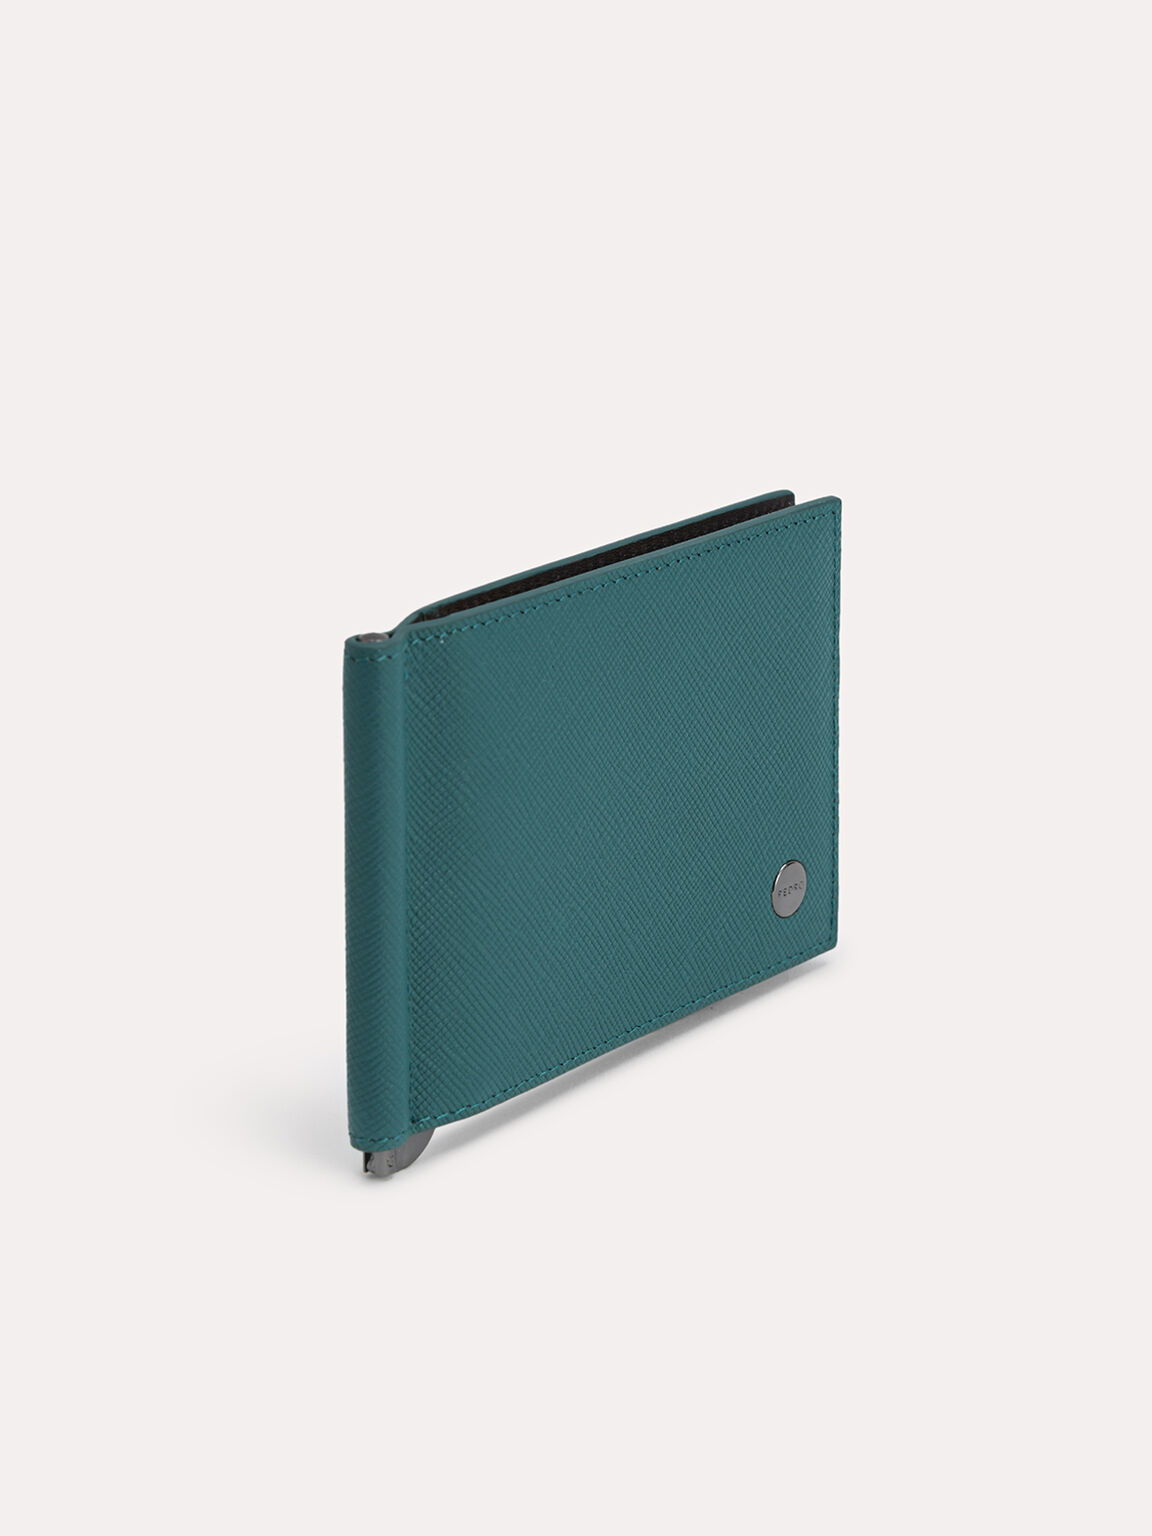 Leather Bi-Fold Card Holder with Money Clip, Dark Green, hi-res